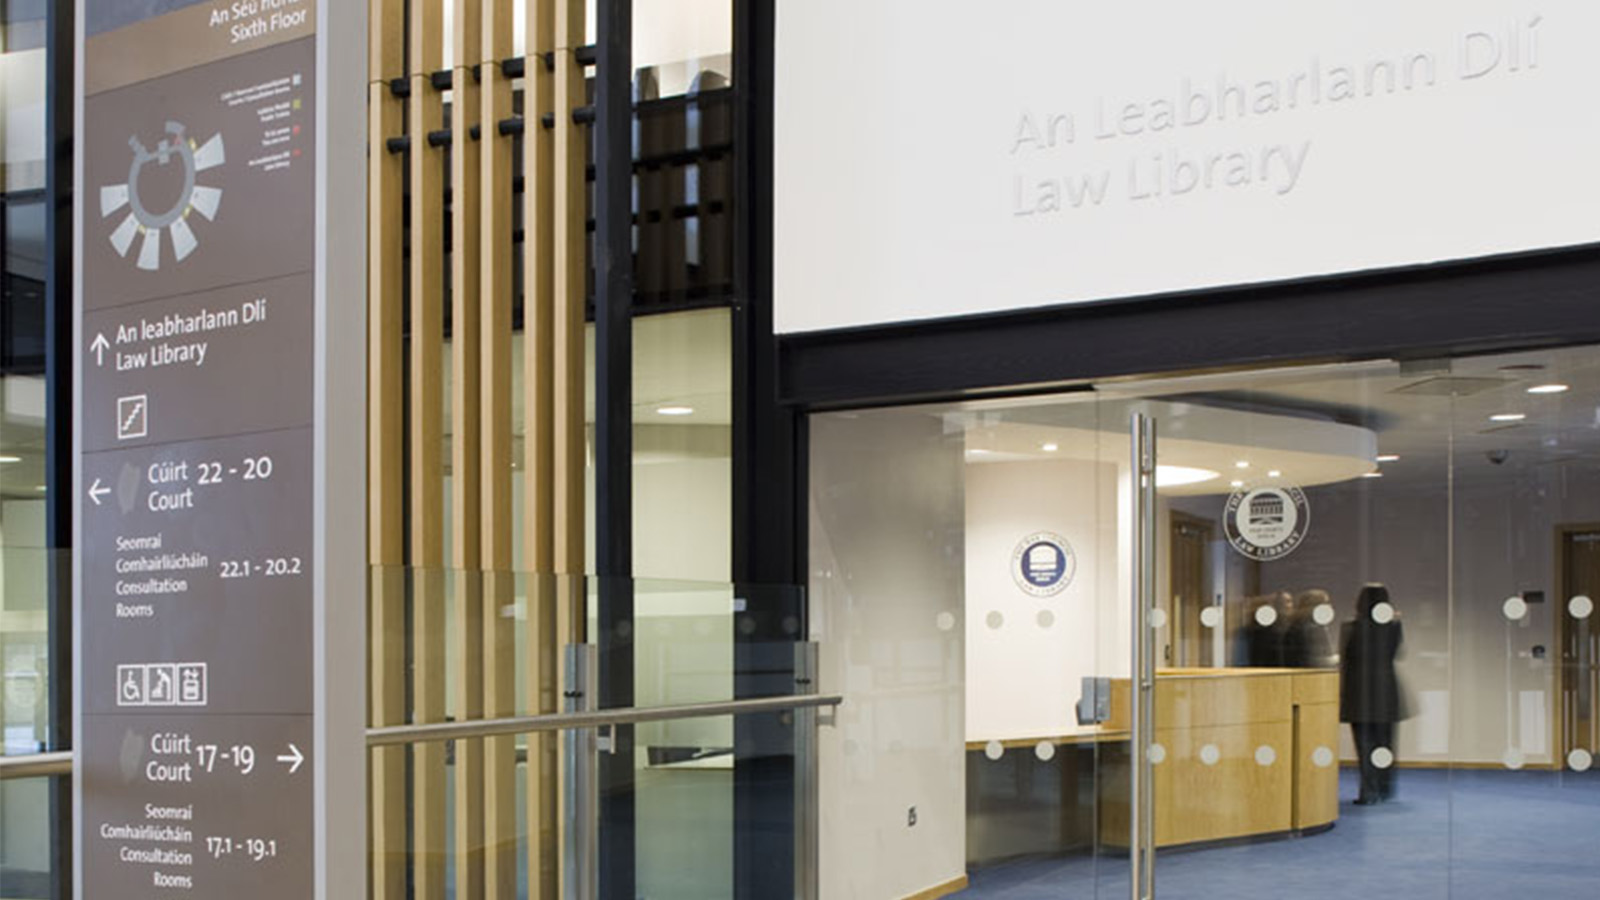 The Bar Council Law Library